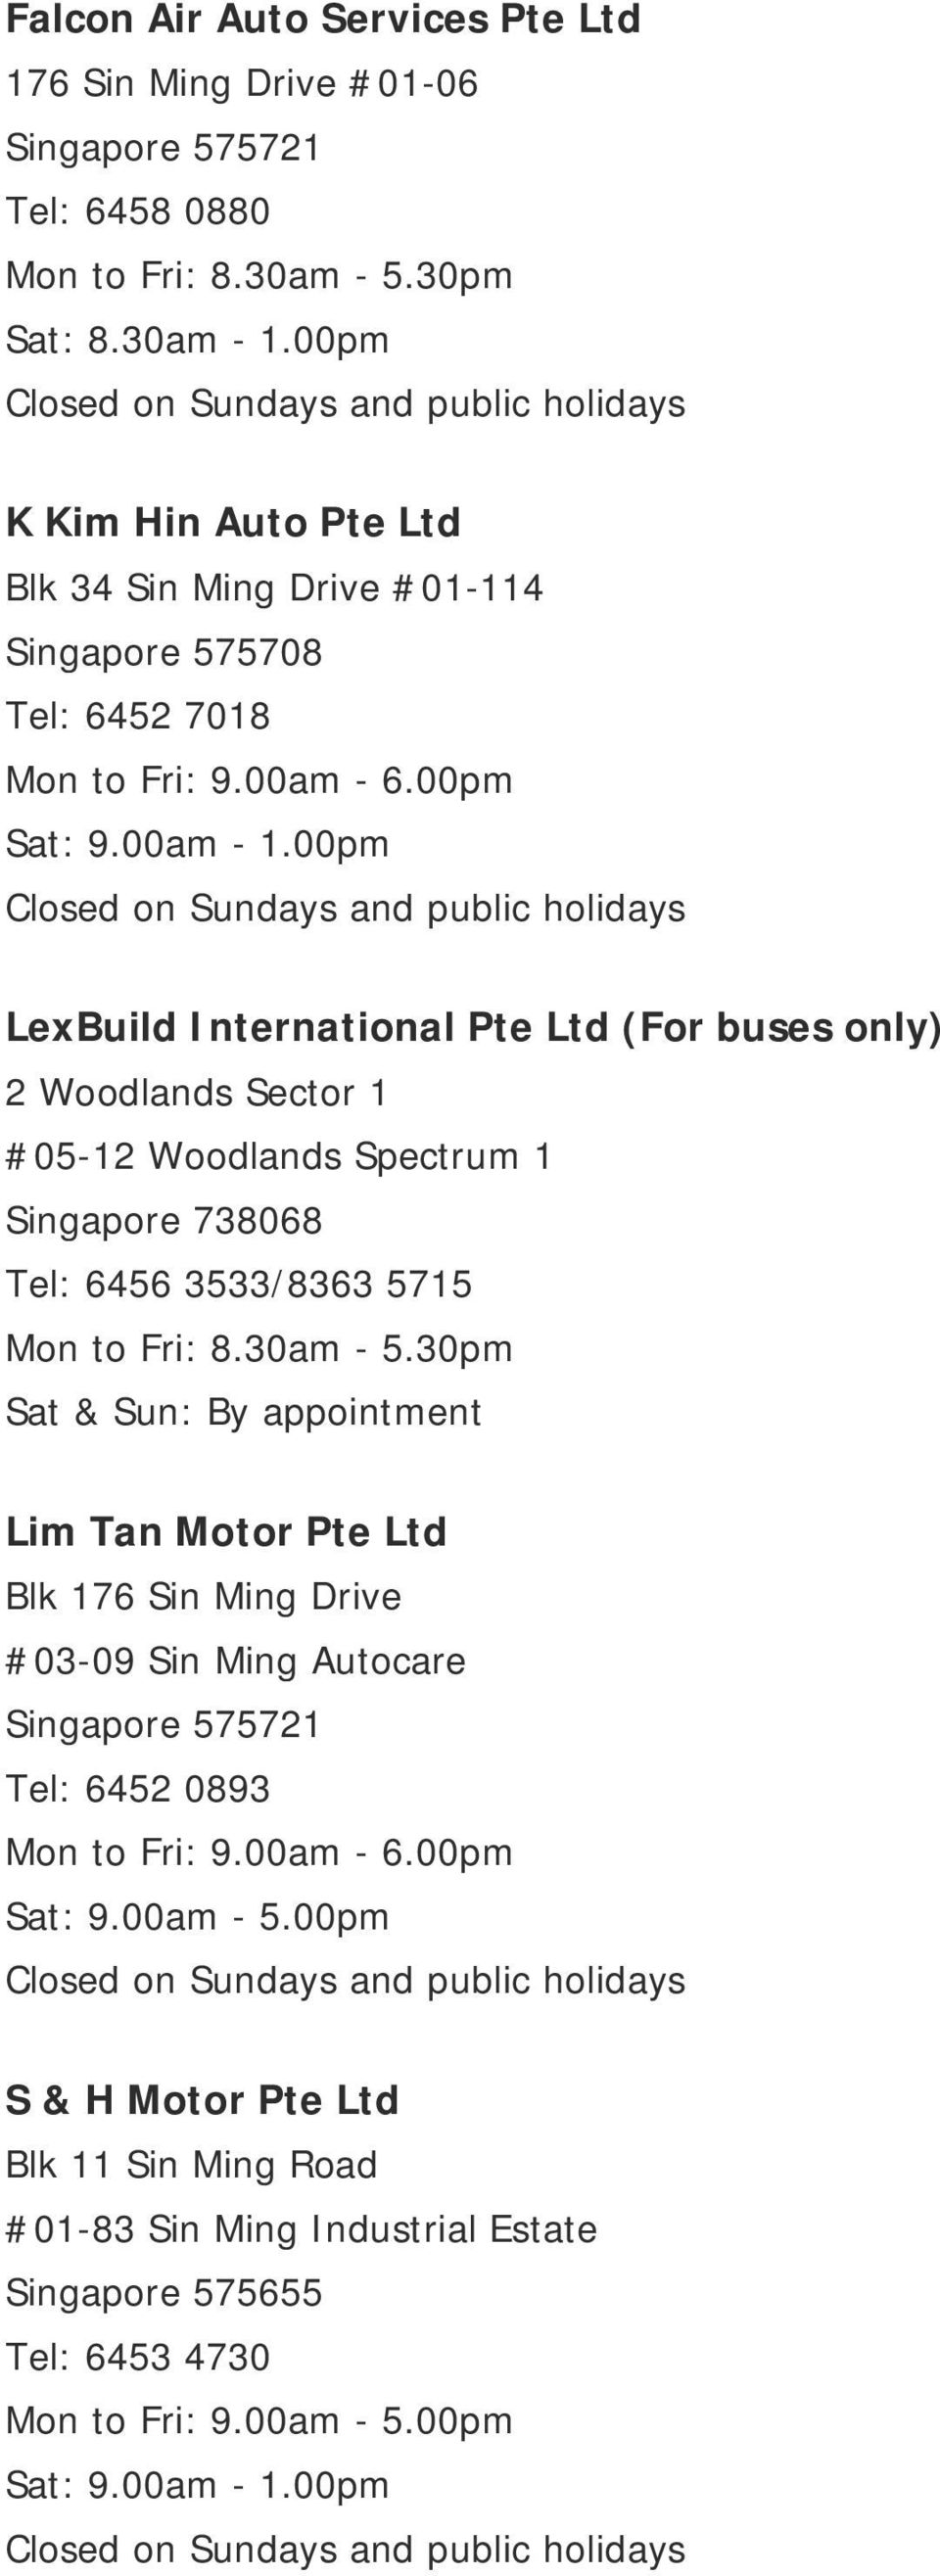 00pm LexBuild International Pte Ltd (For buses only) 2 Woodlands Sector 1 #05-12 Woodlands Spectrum 1 Singapore 738068 Tel: 6456 3533/8363 5715 Sat & Sun: By